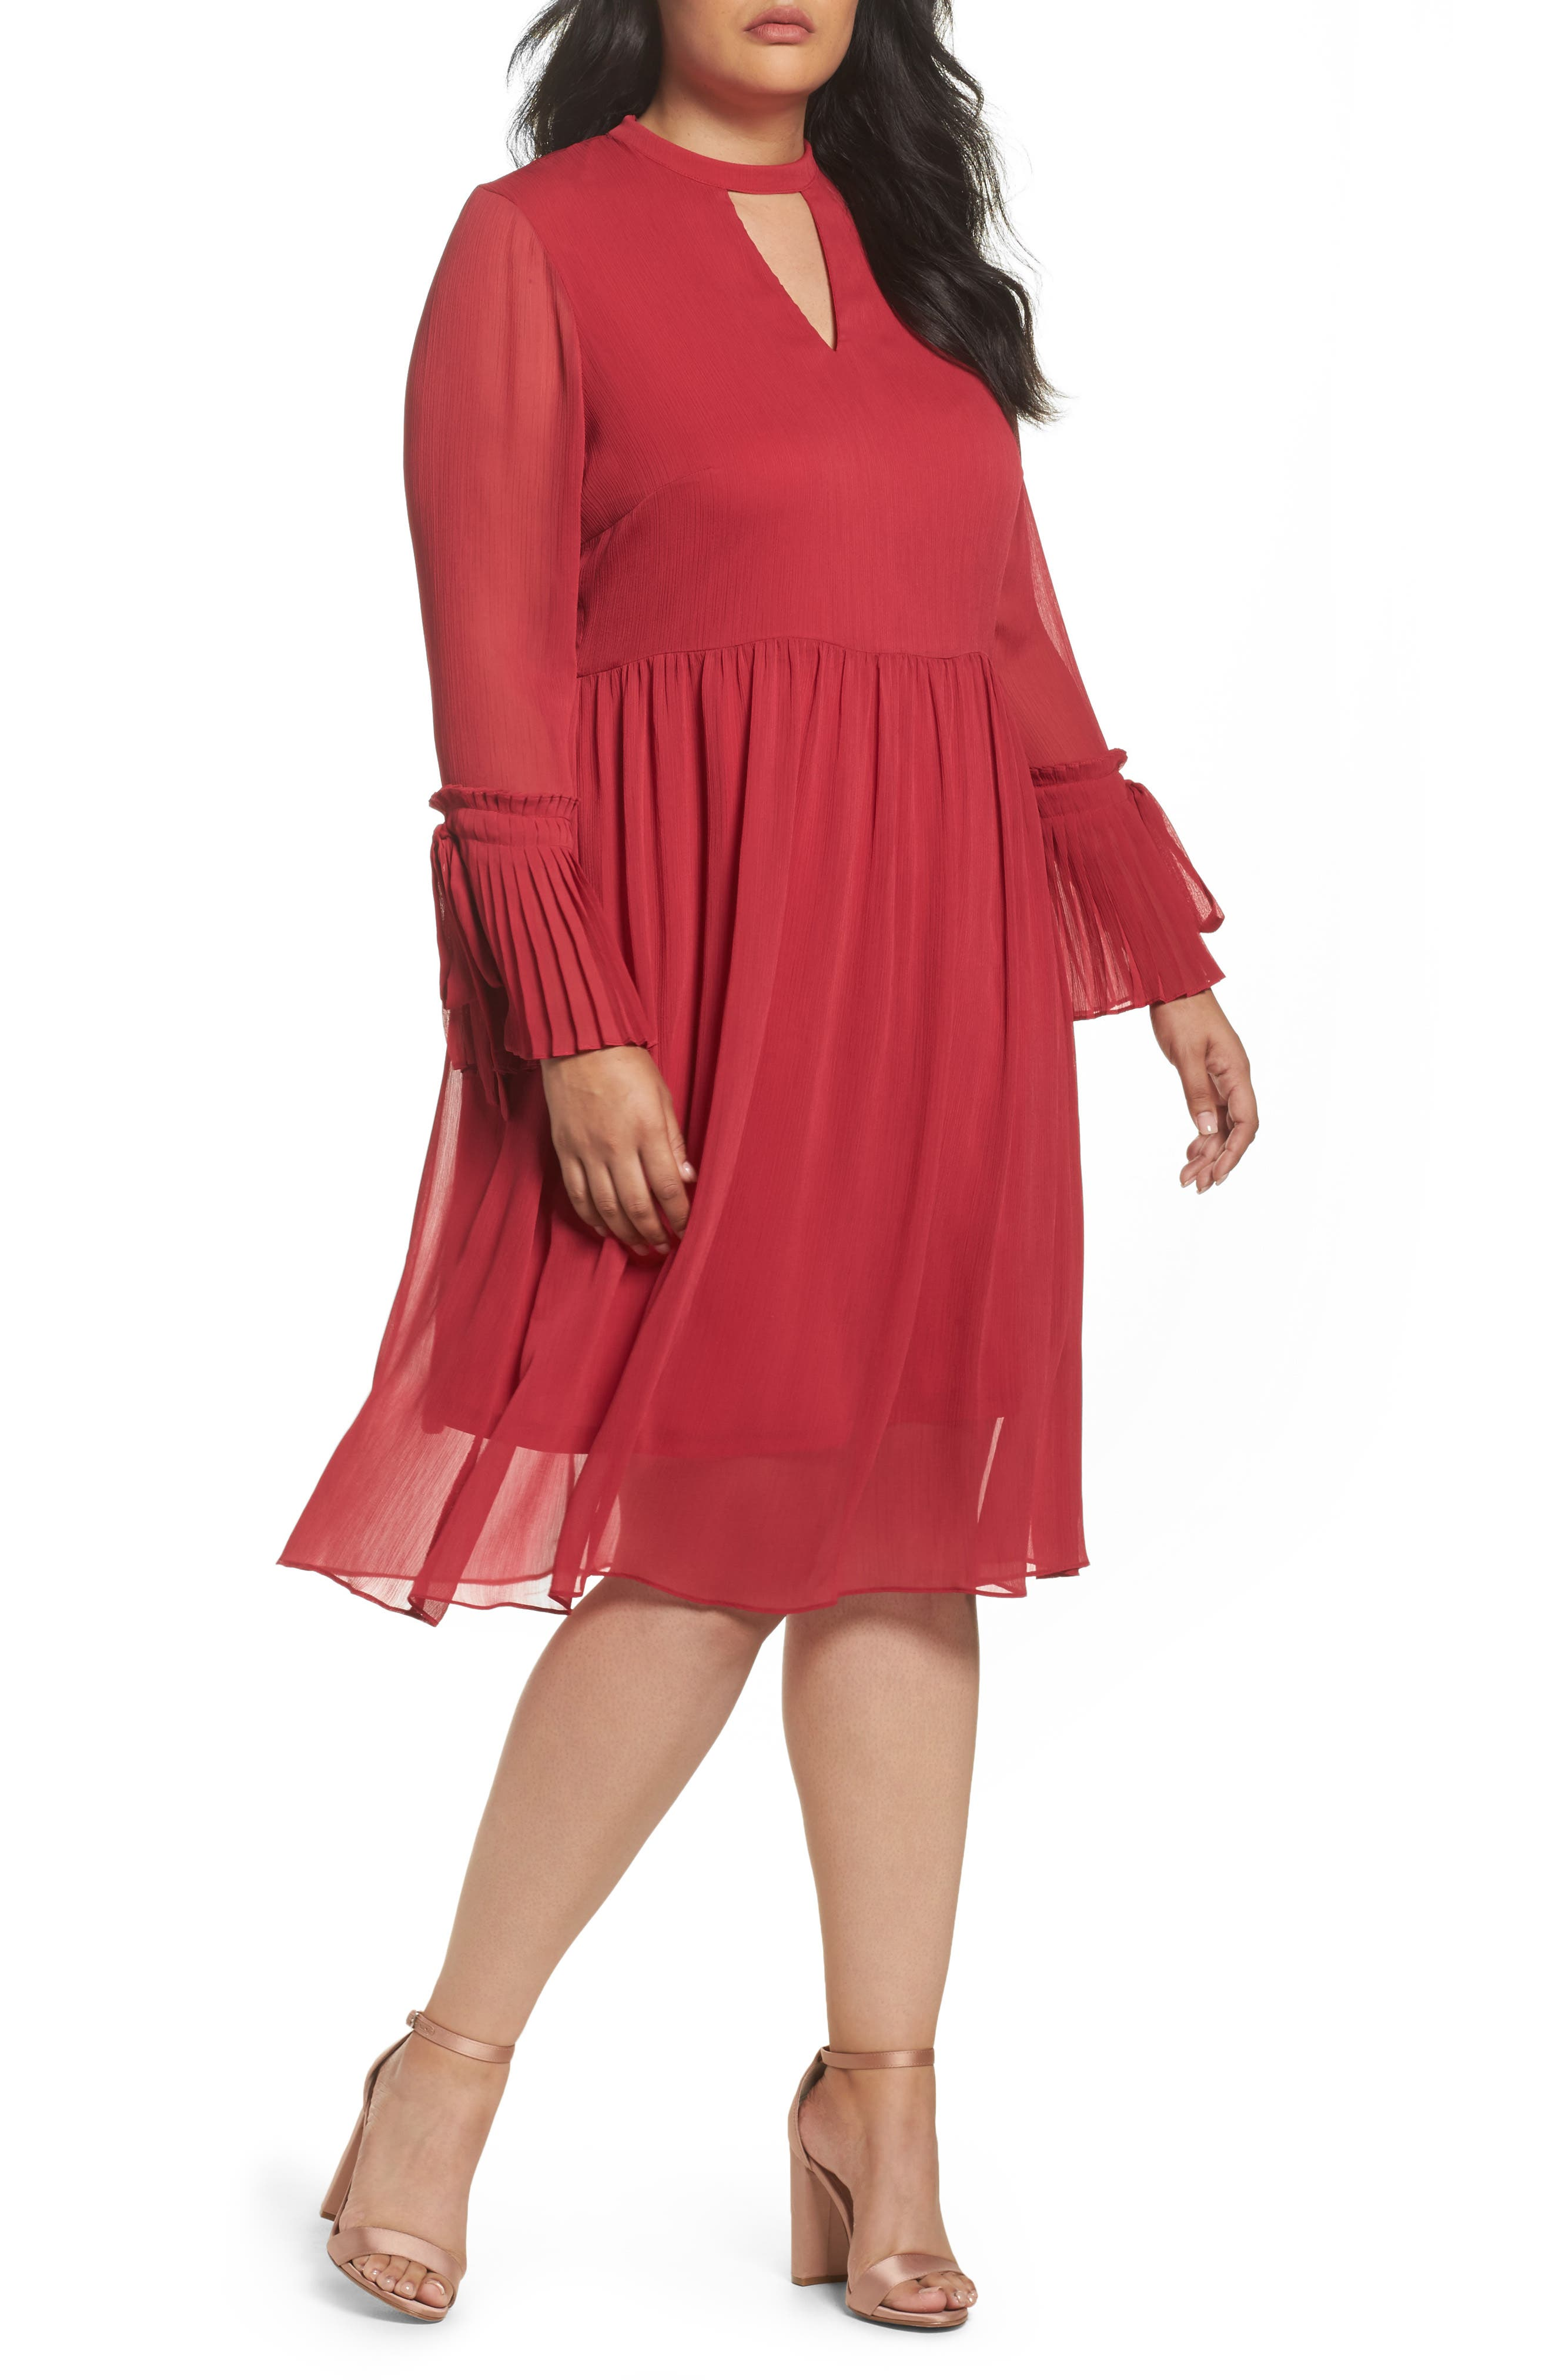 Main Image - LOST INK Pleat Cuff Fit & Flare Dress (Plus Size)